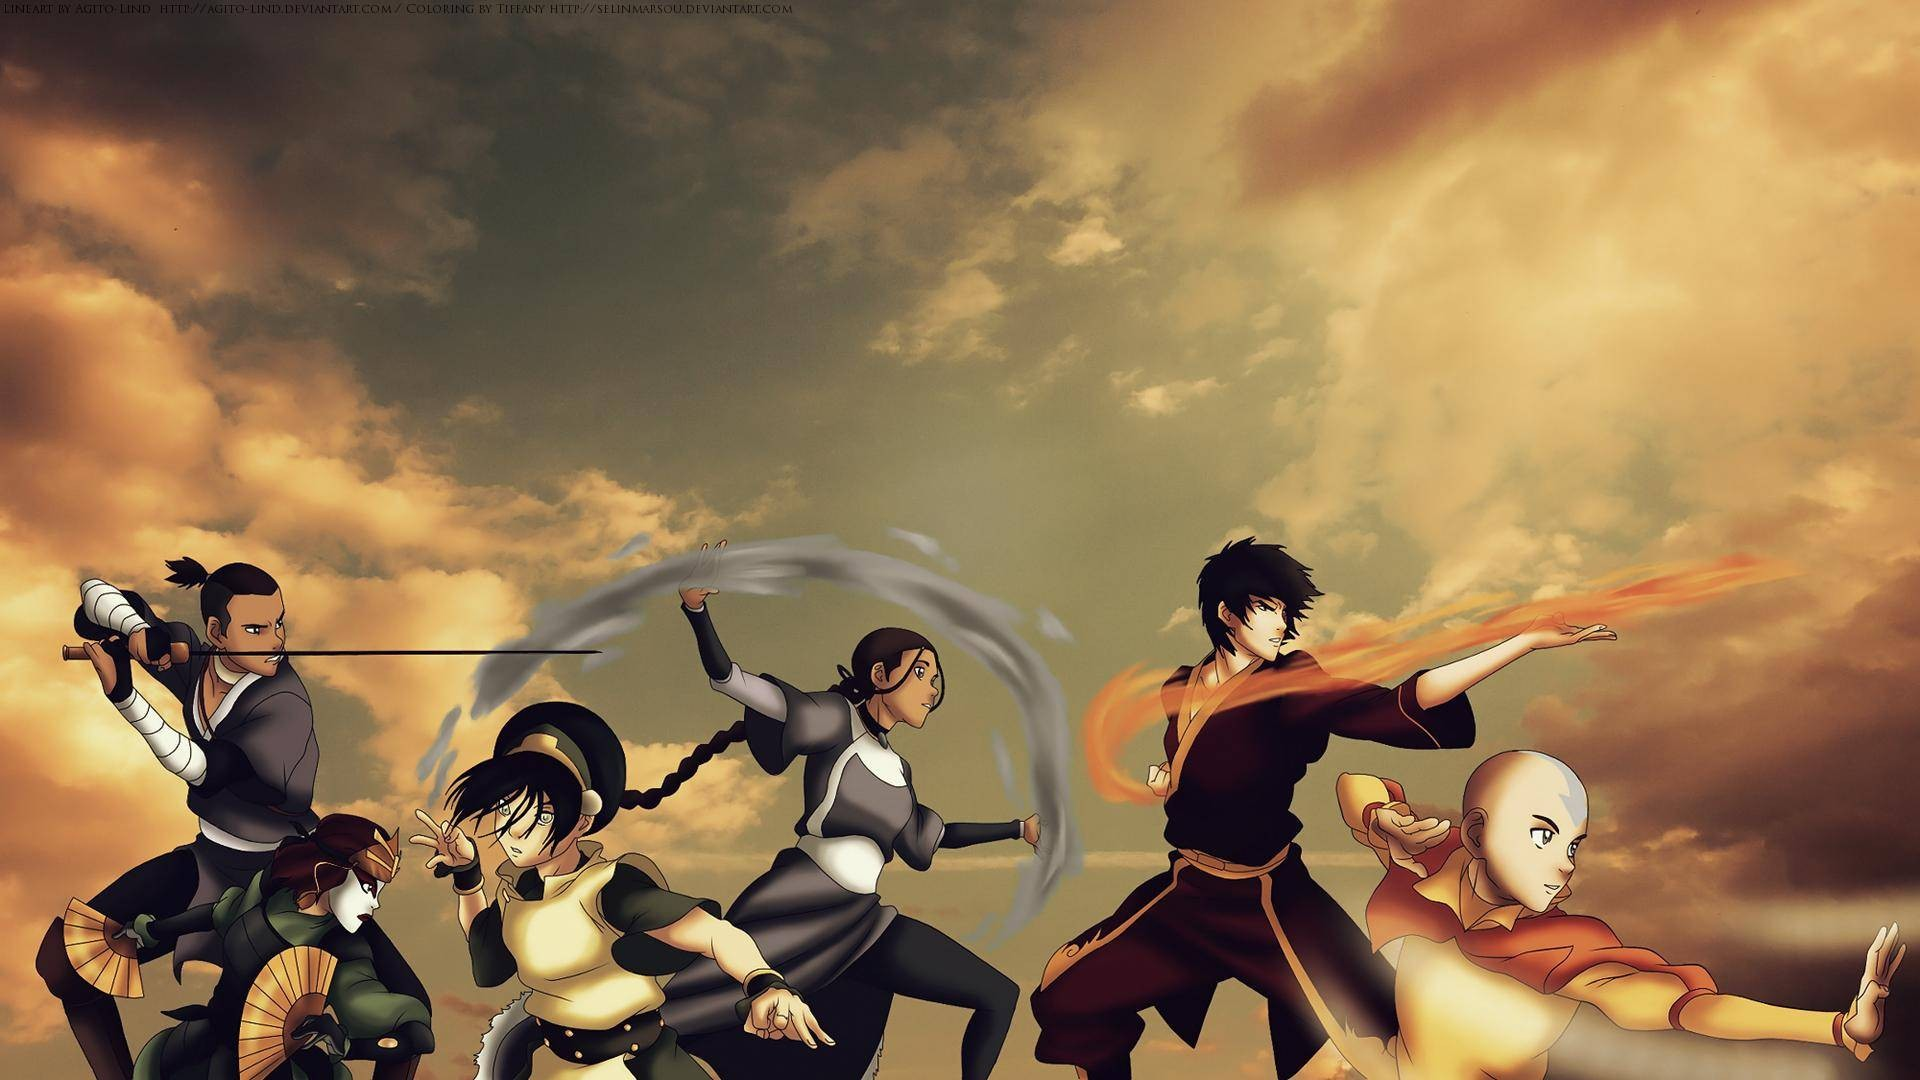 Legend of korra wallpaper download free cool high resolution korra voltagebd Images